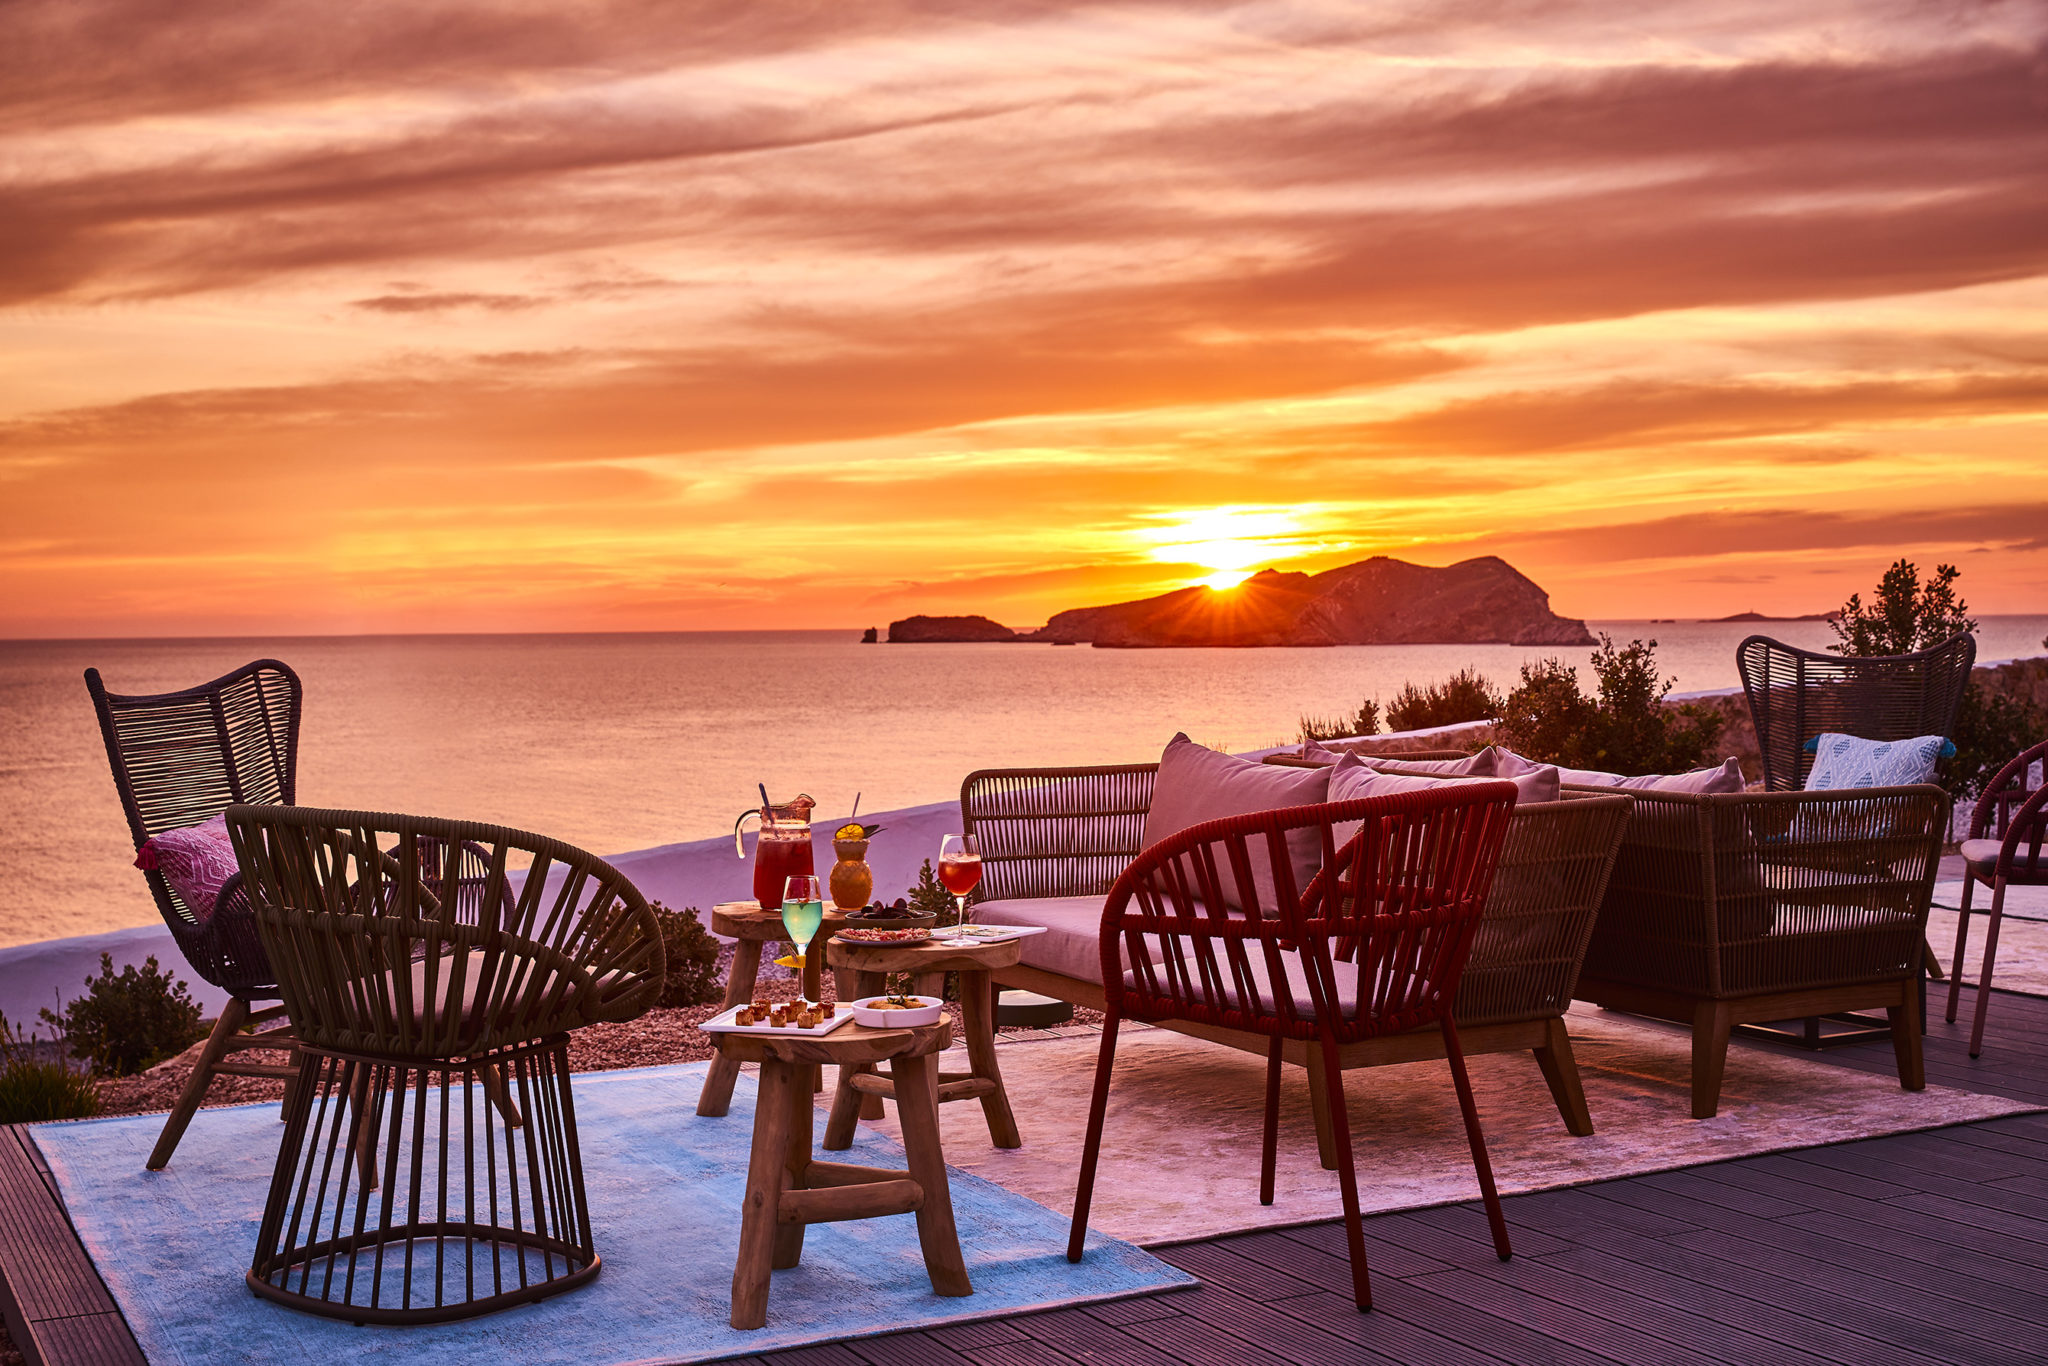 In search of the best sunset restaurant Ibiza has to offer